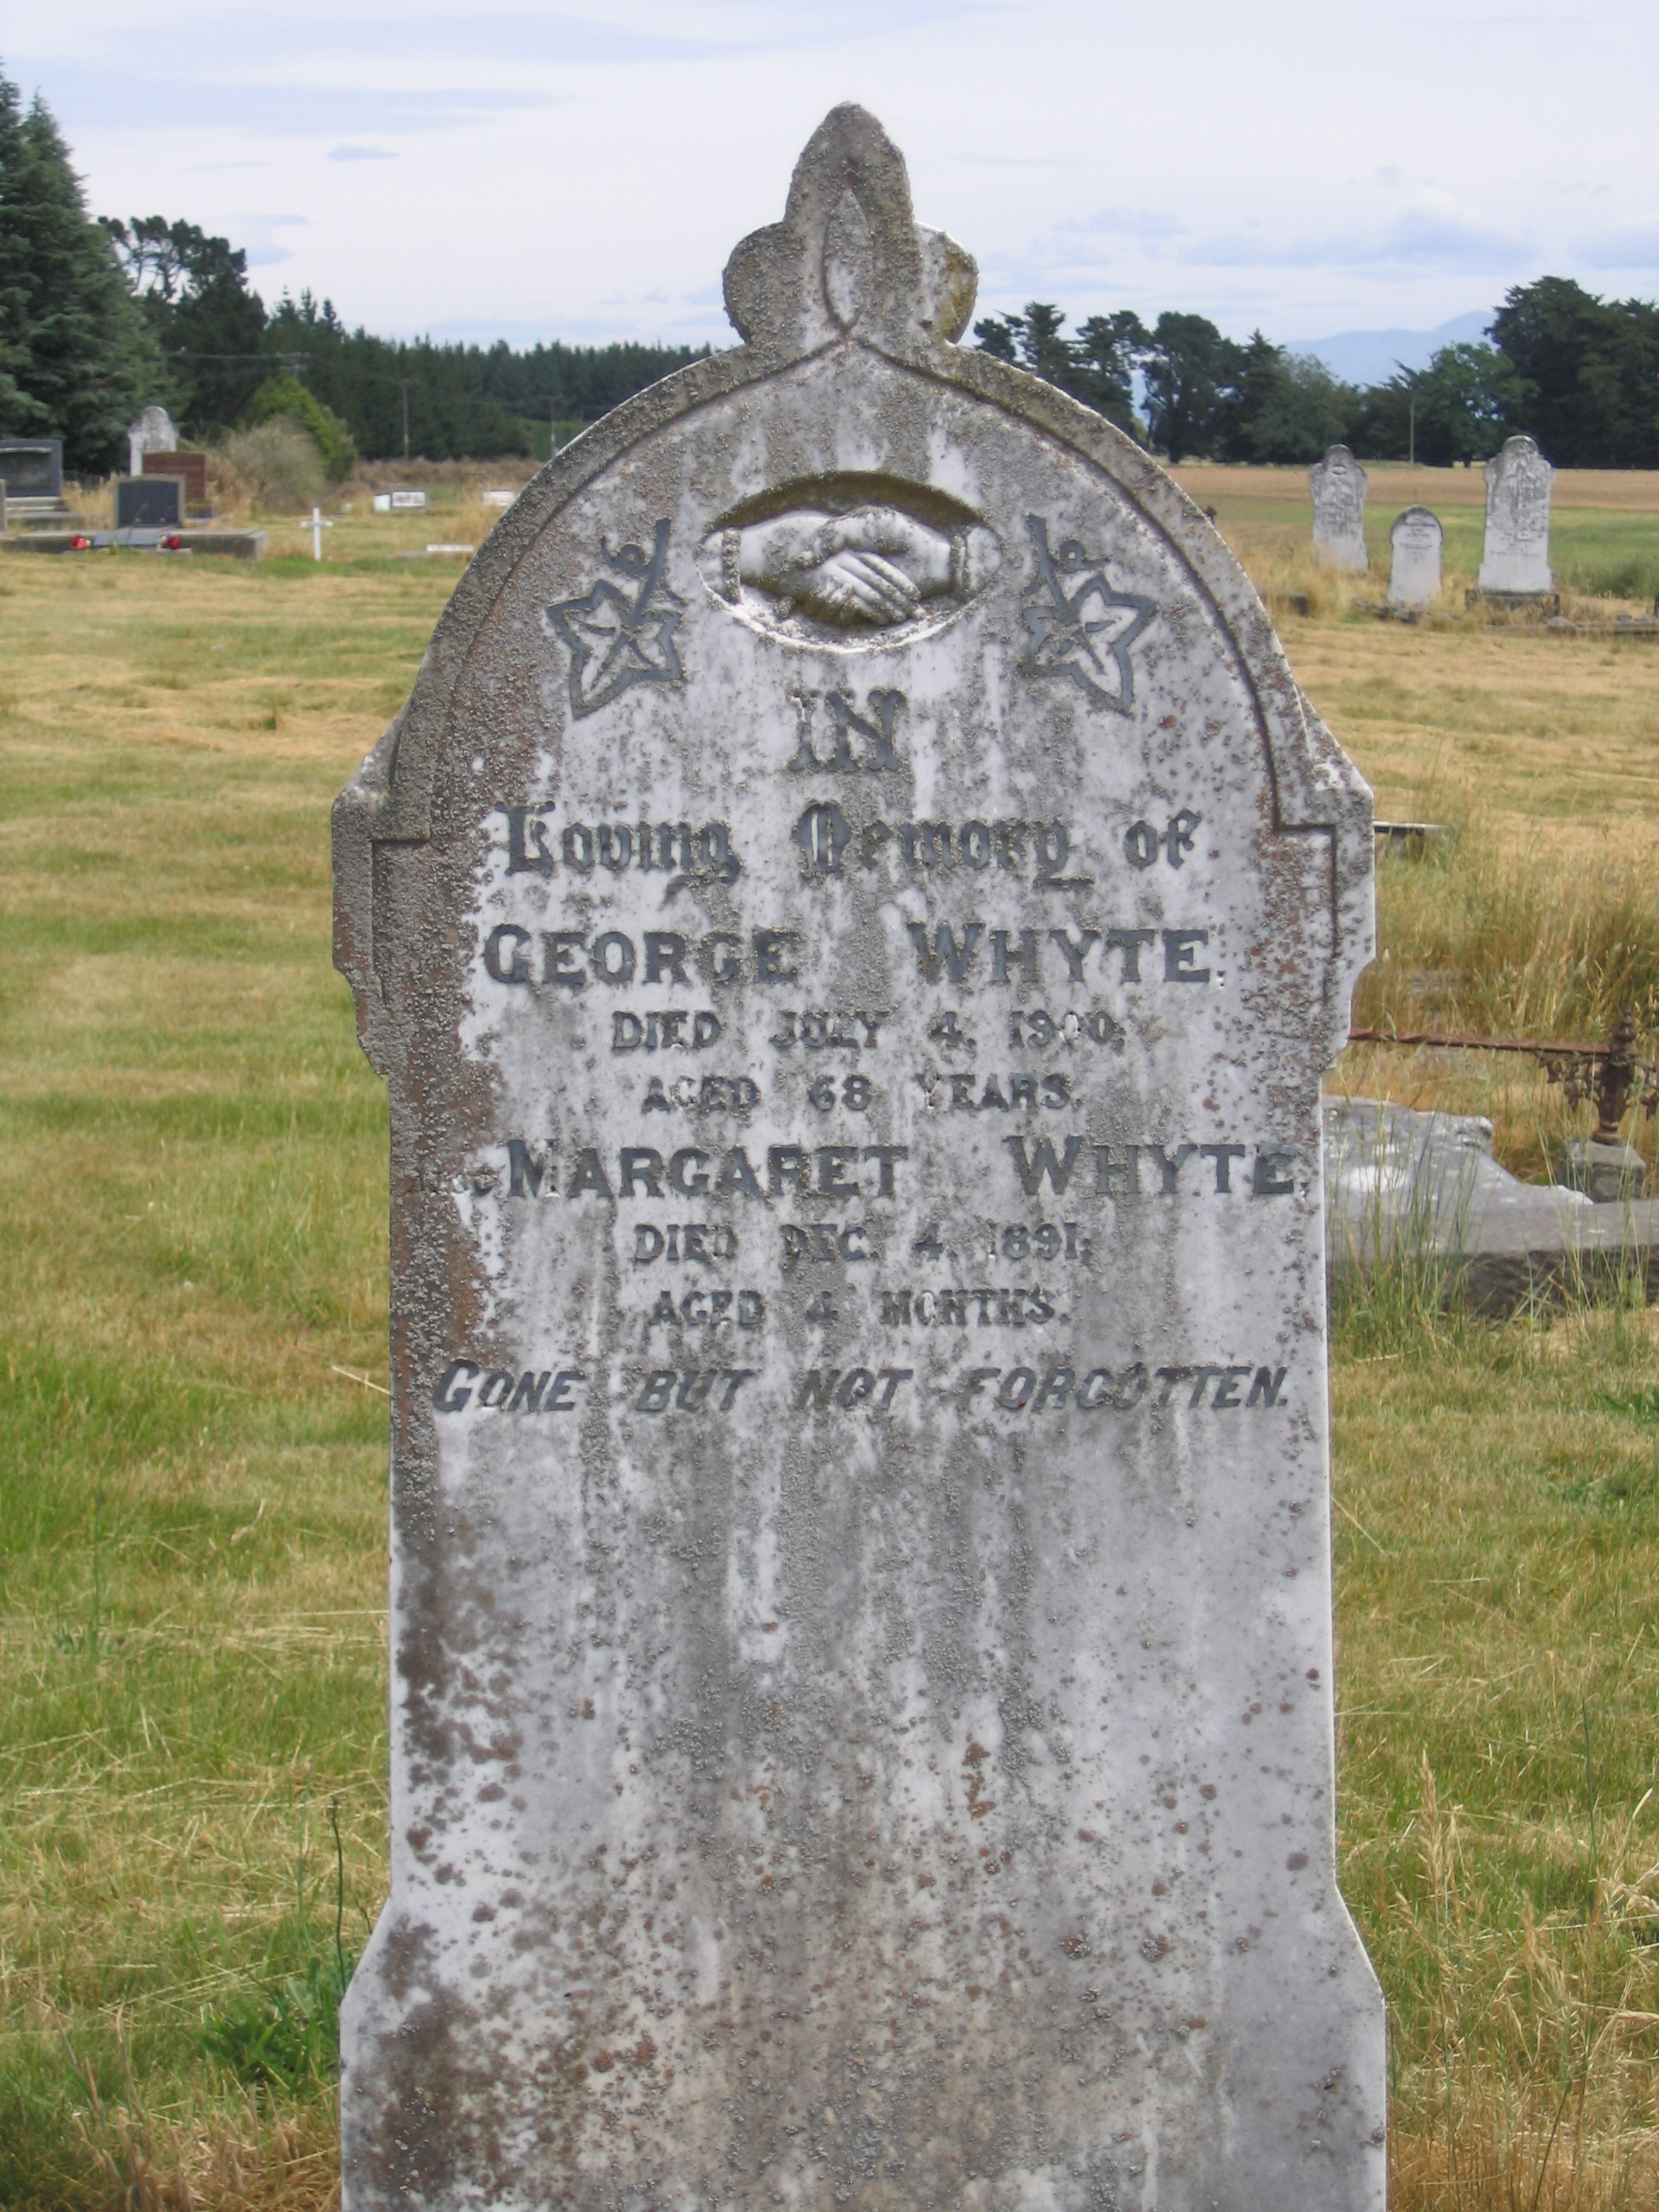 Cleaning Gravestones – DOS and DON'TS | Hunting Kiwis